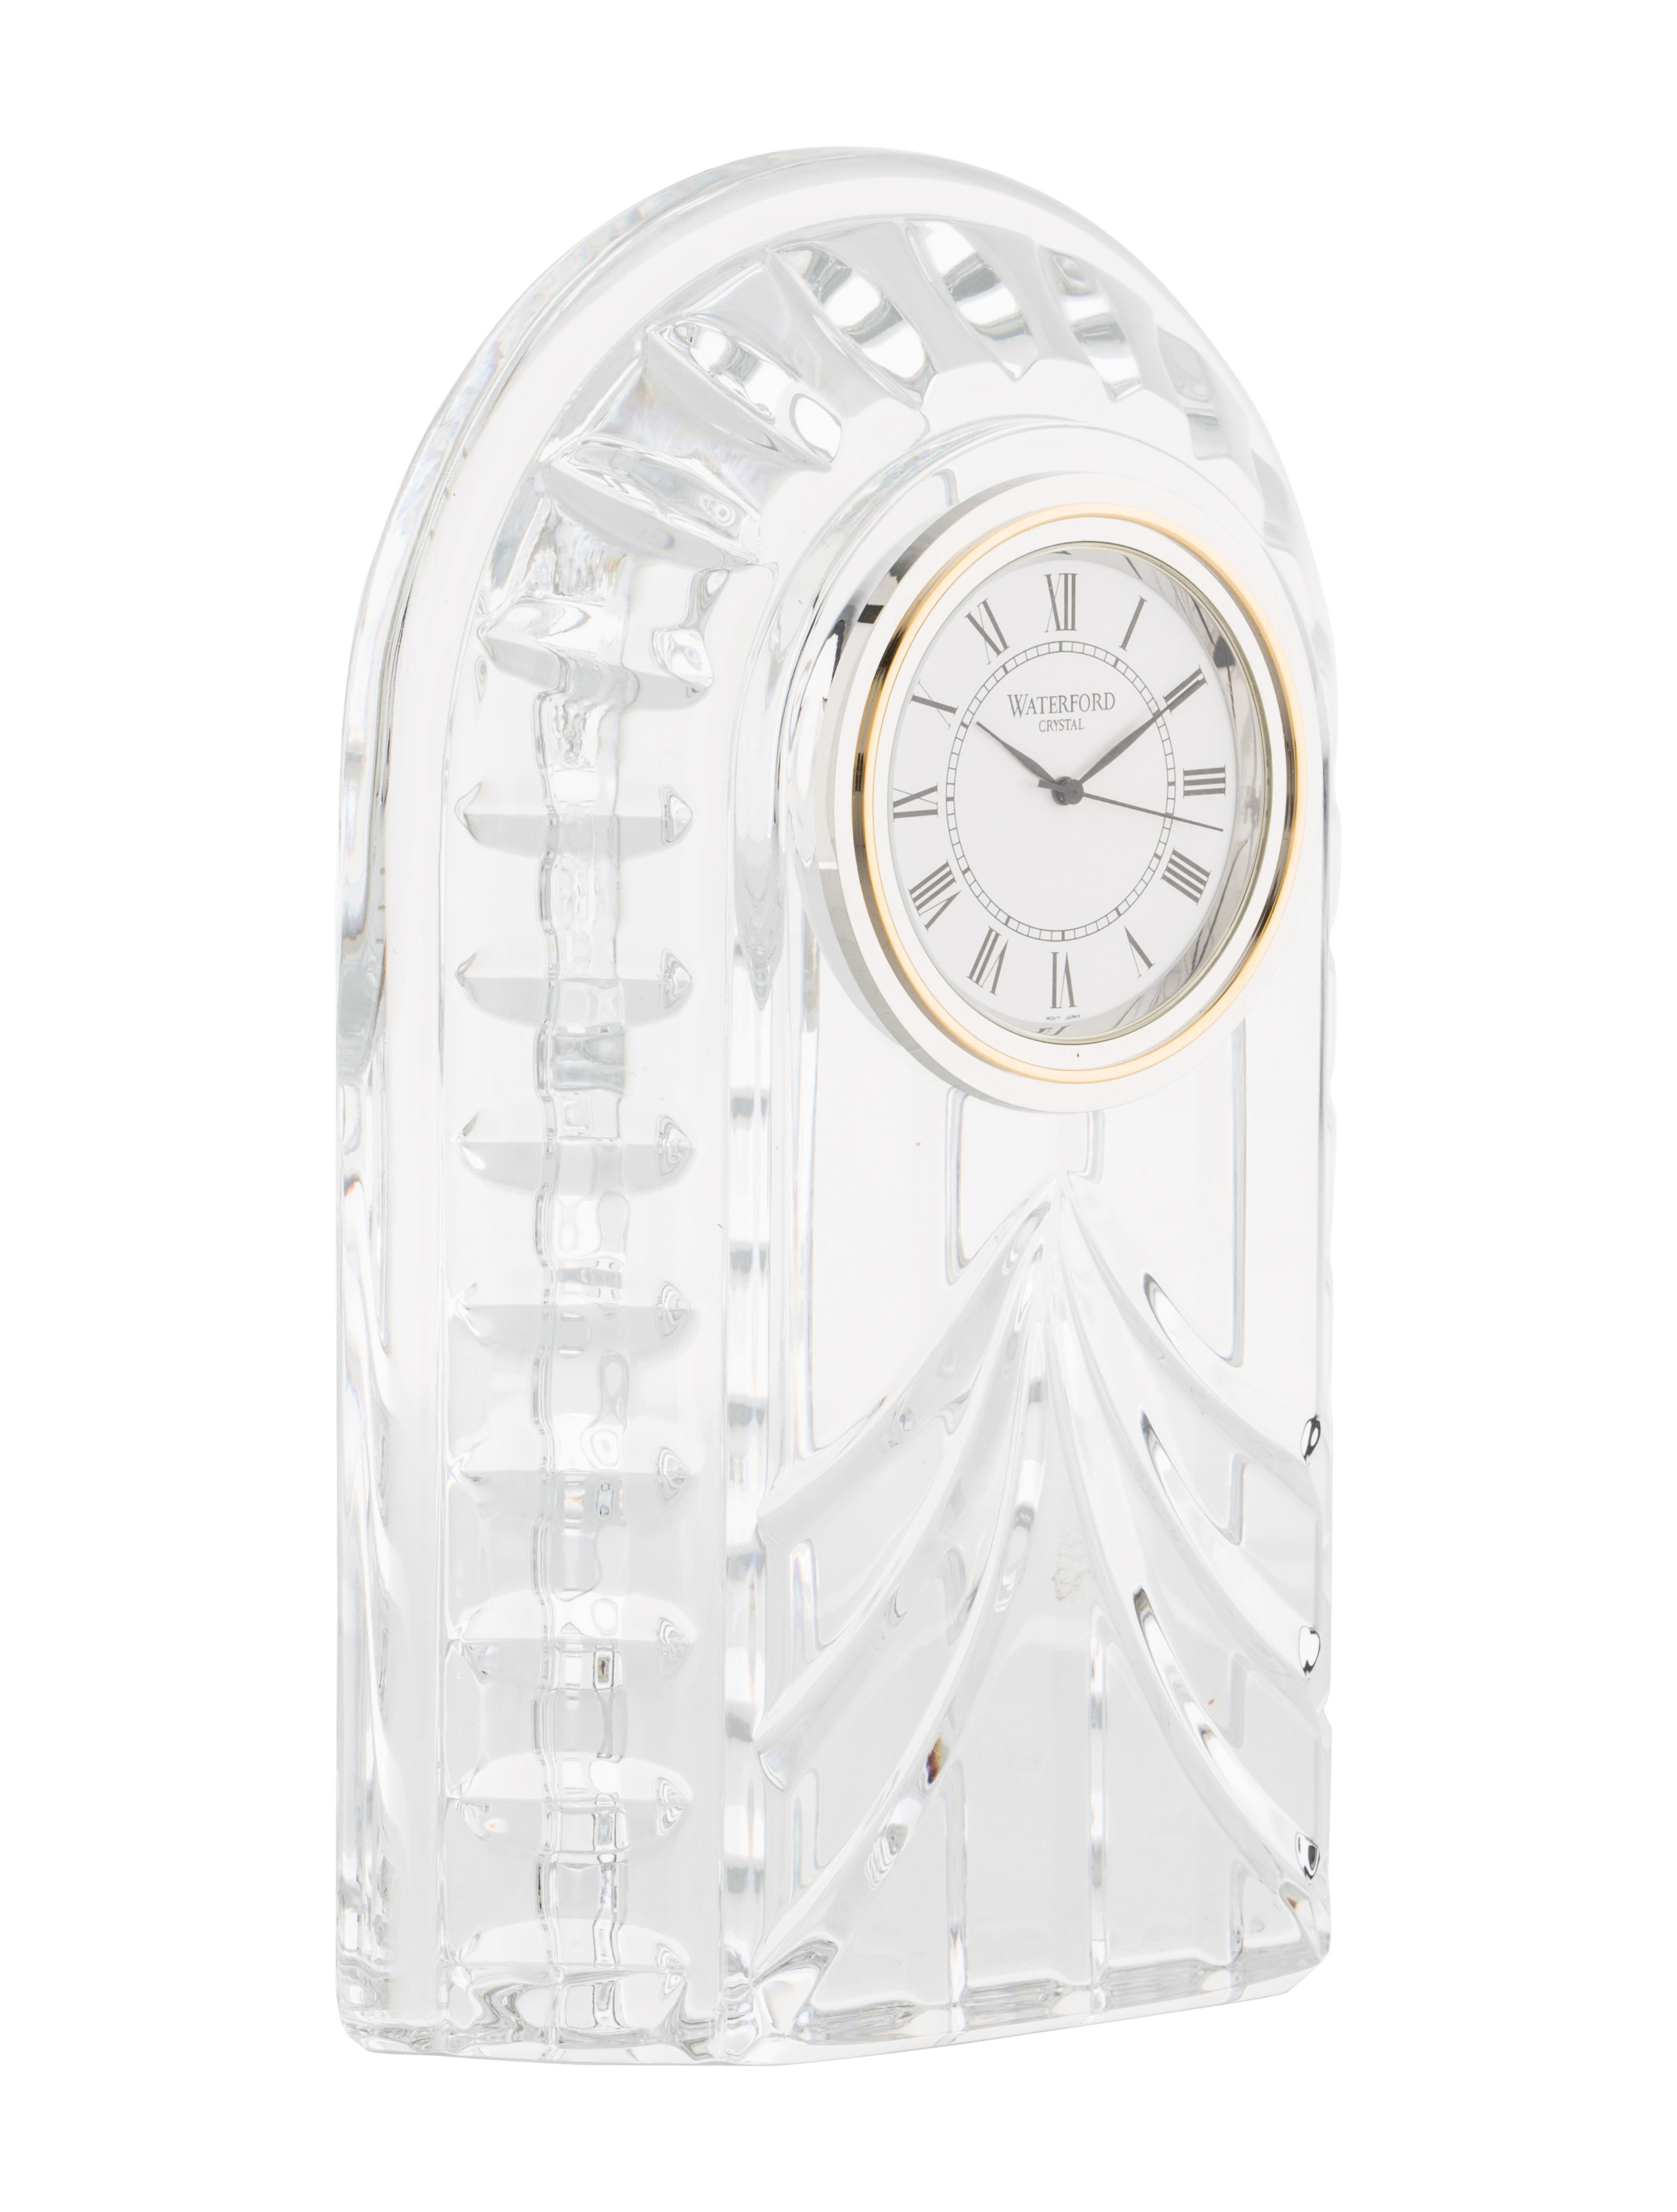 Waterford crystal overture clock decor and accessories Crystal home decor